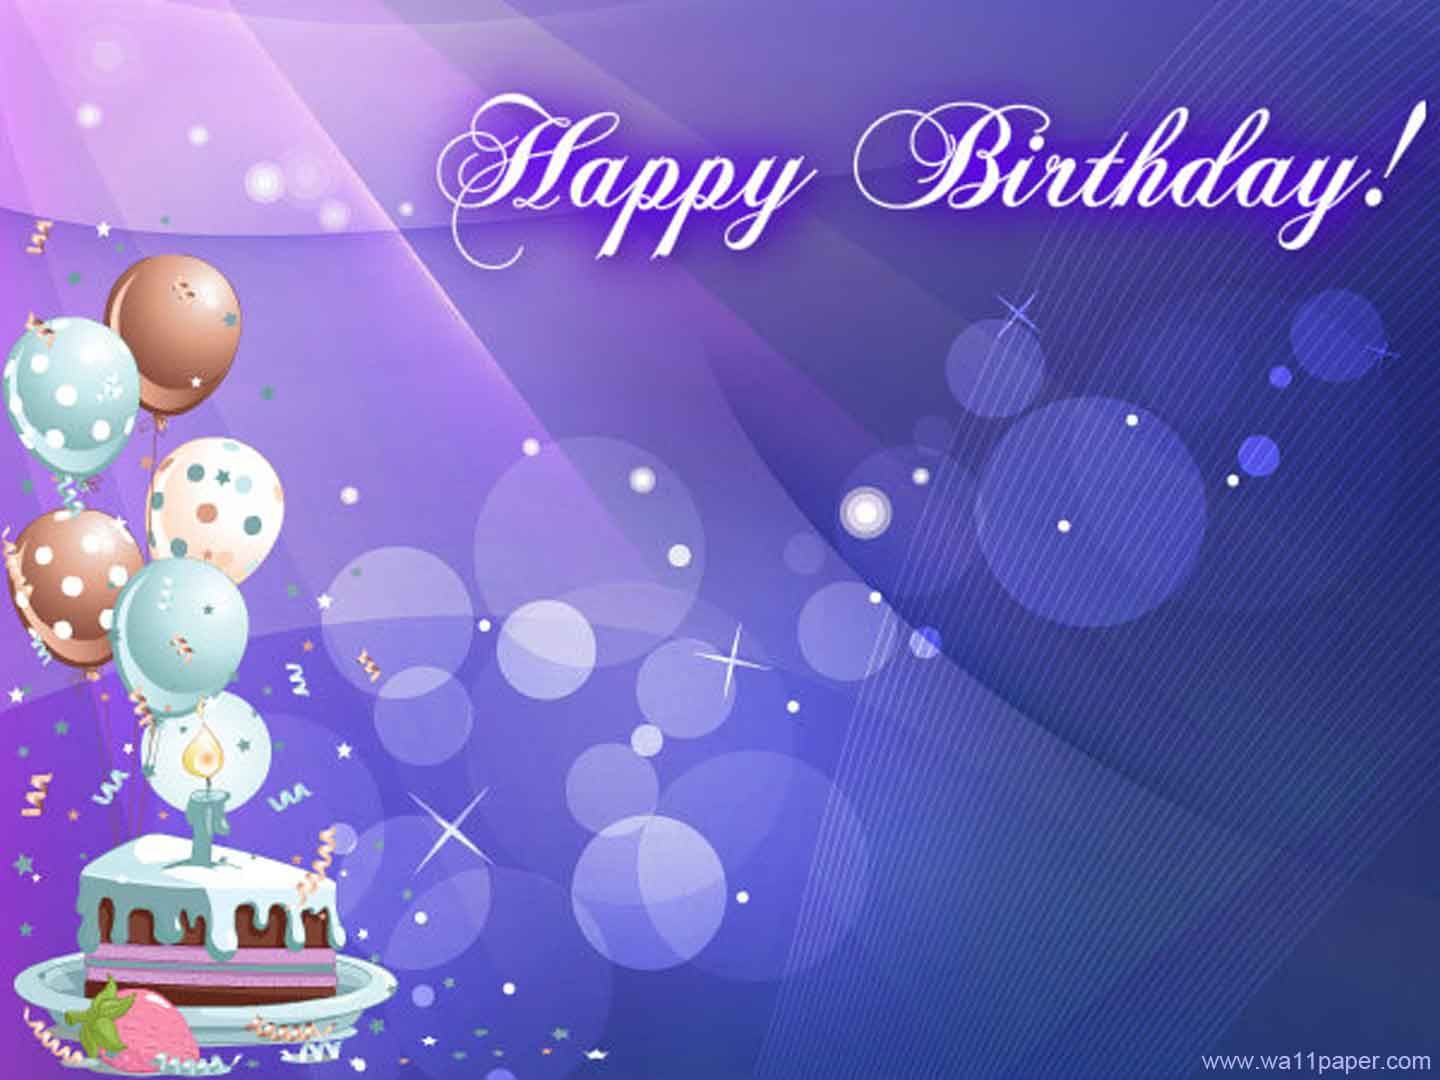 Birthday Backgrounds Free Happy Birthday Wishes Photos Birthday Background Images Happy Birthday Wishes Images